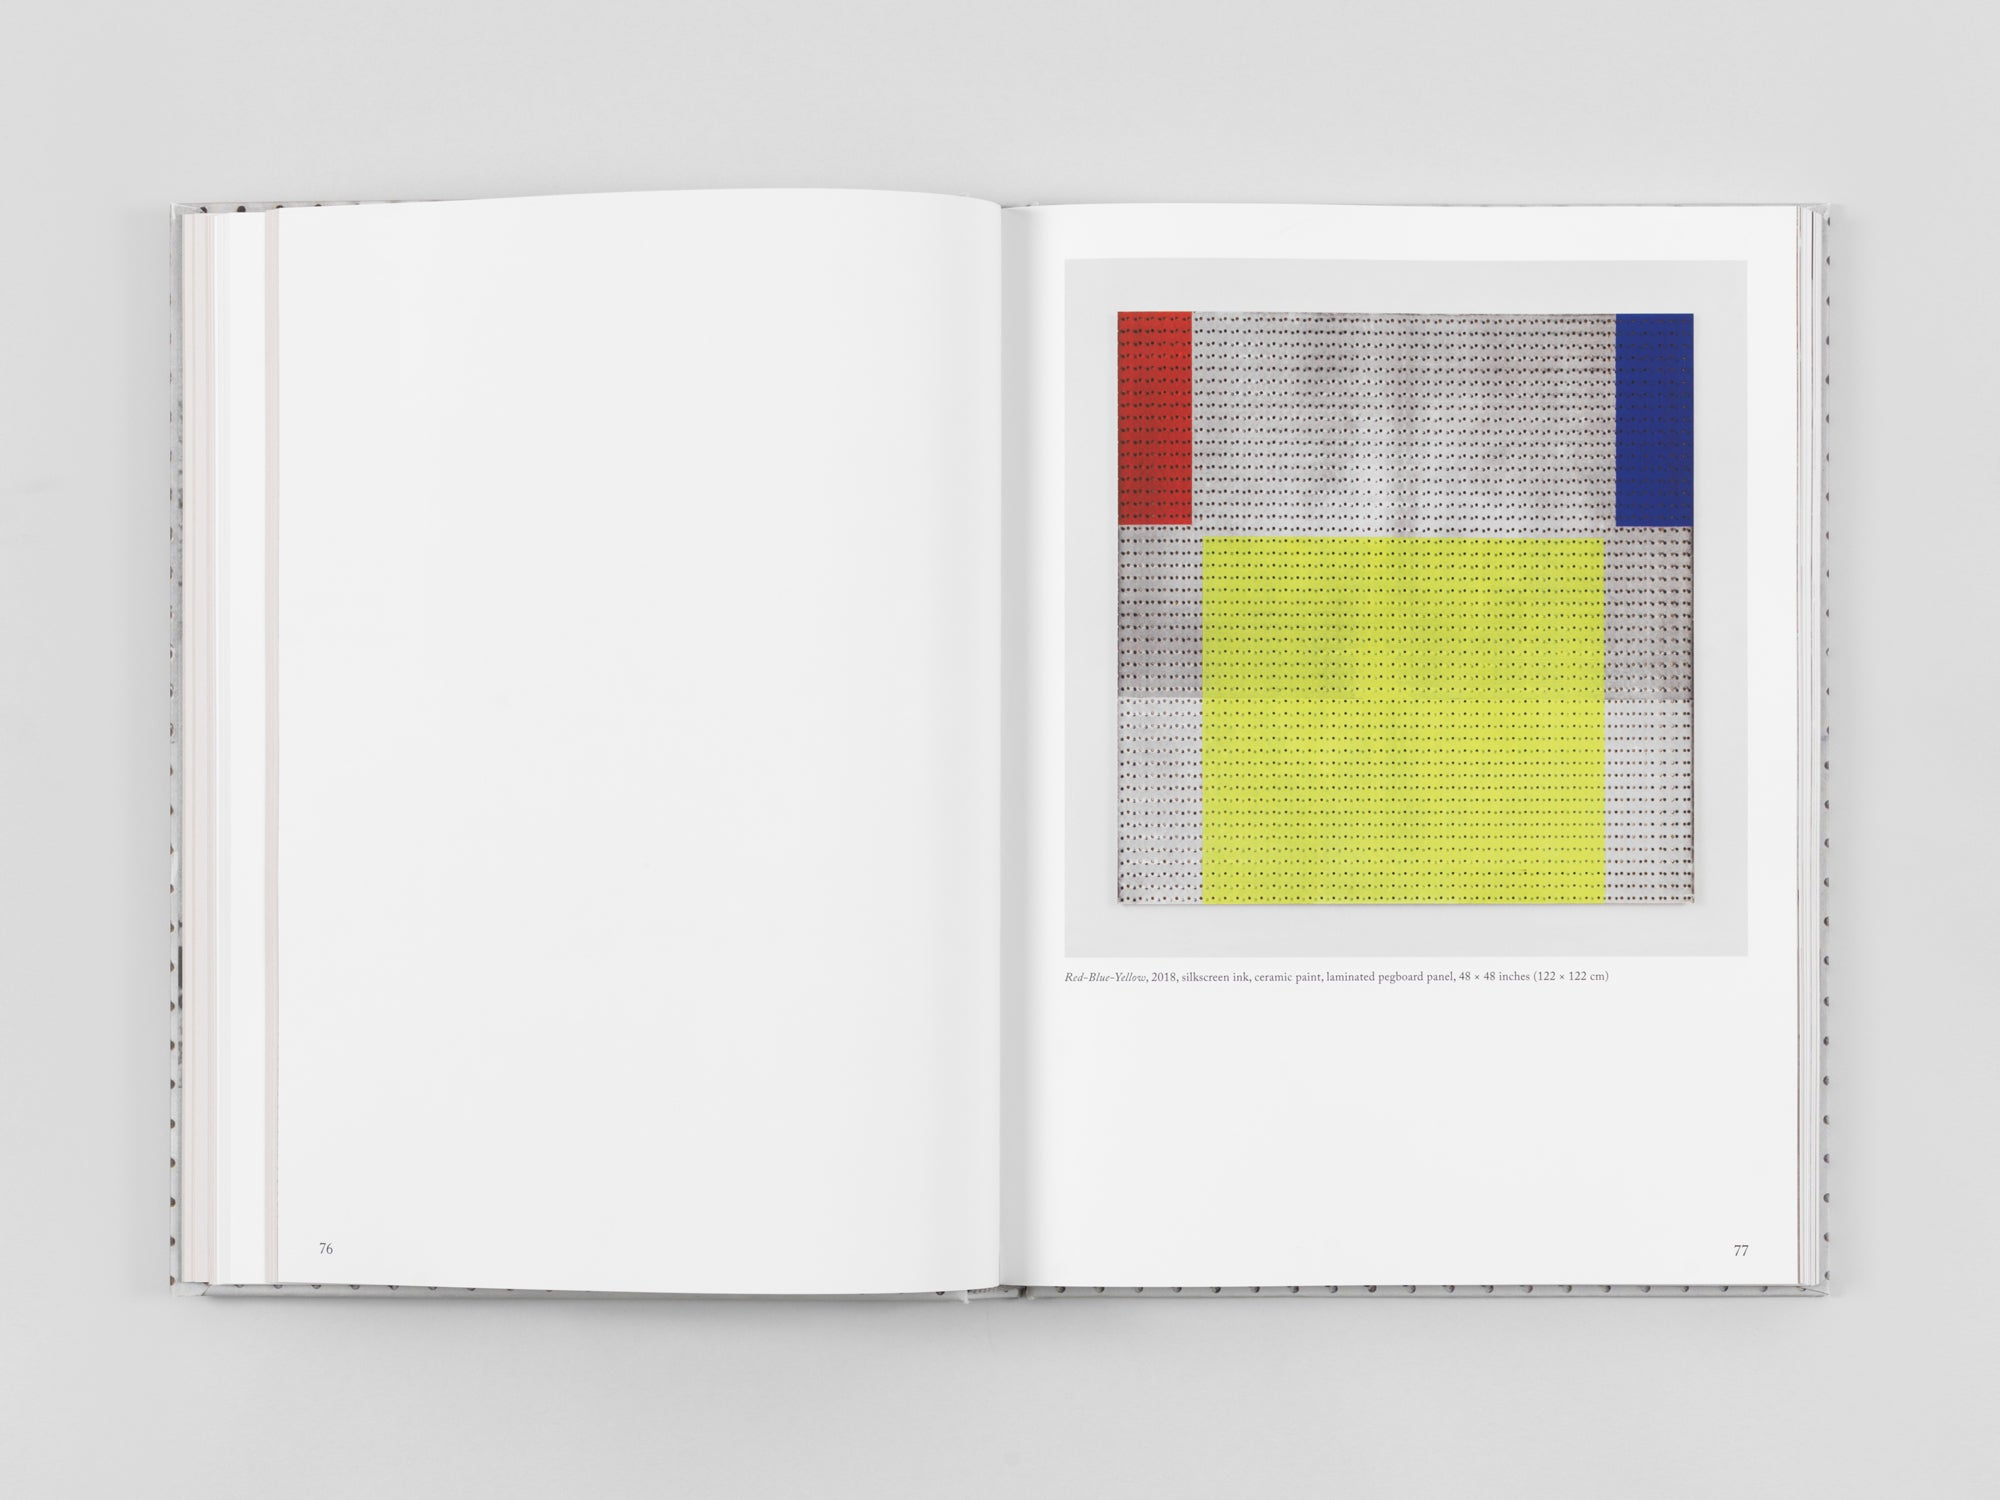 Servane Mary monograph designed by Pacific Books